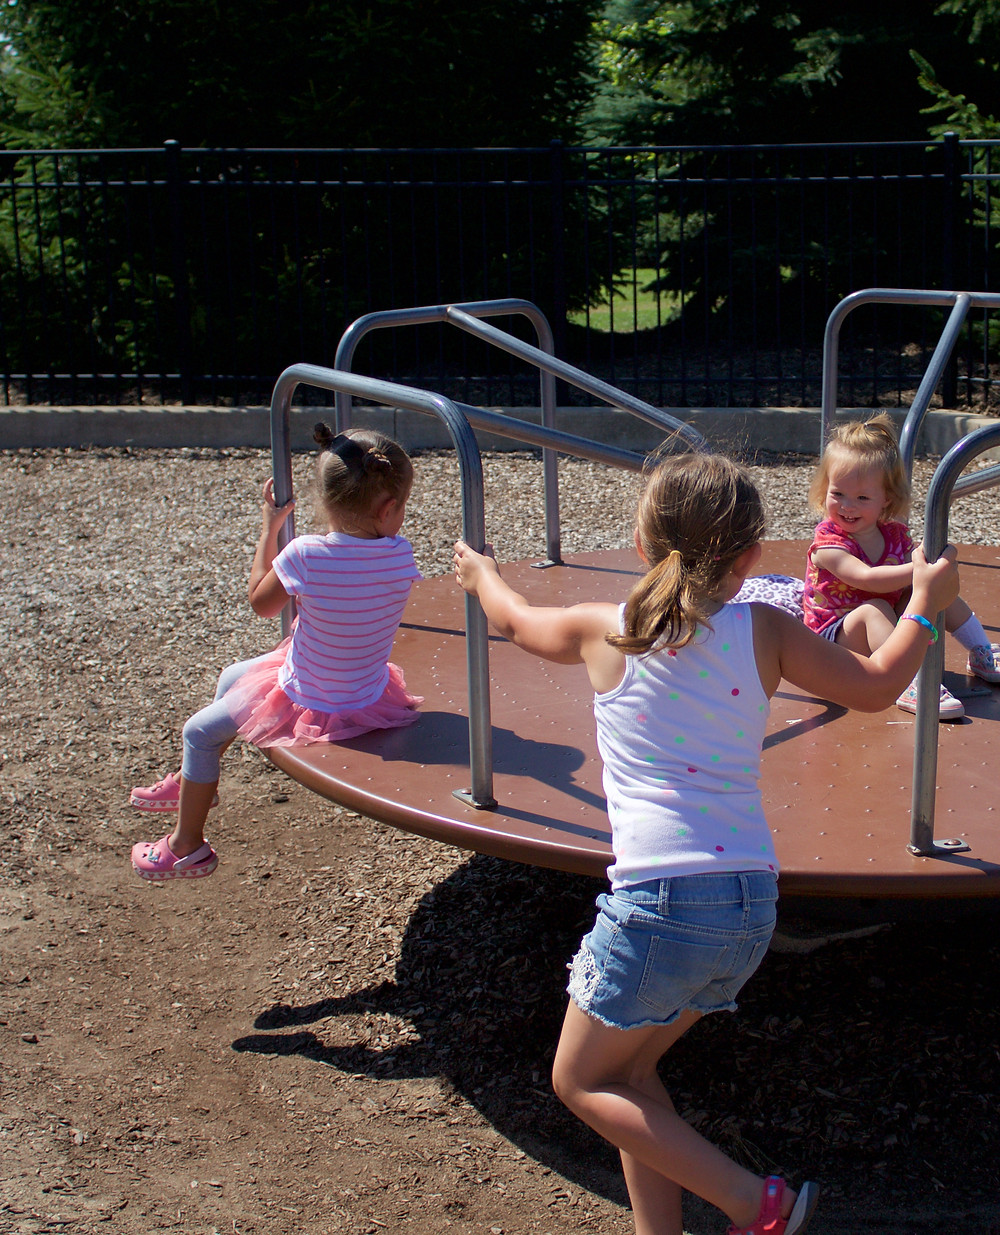 Blue Sky Daycare home daycare children enjoying outdoor time at the park